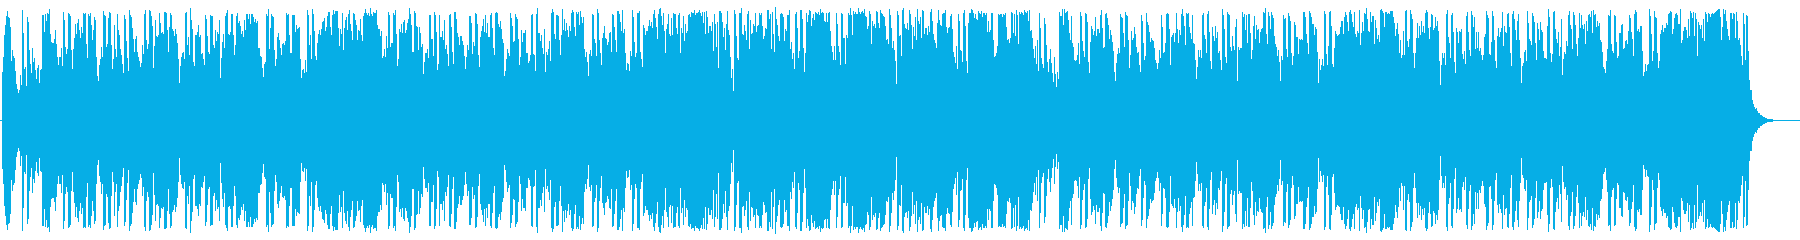 BGM of a gorgeous and large atmosphere's reproduced waveform